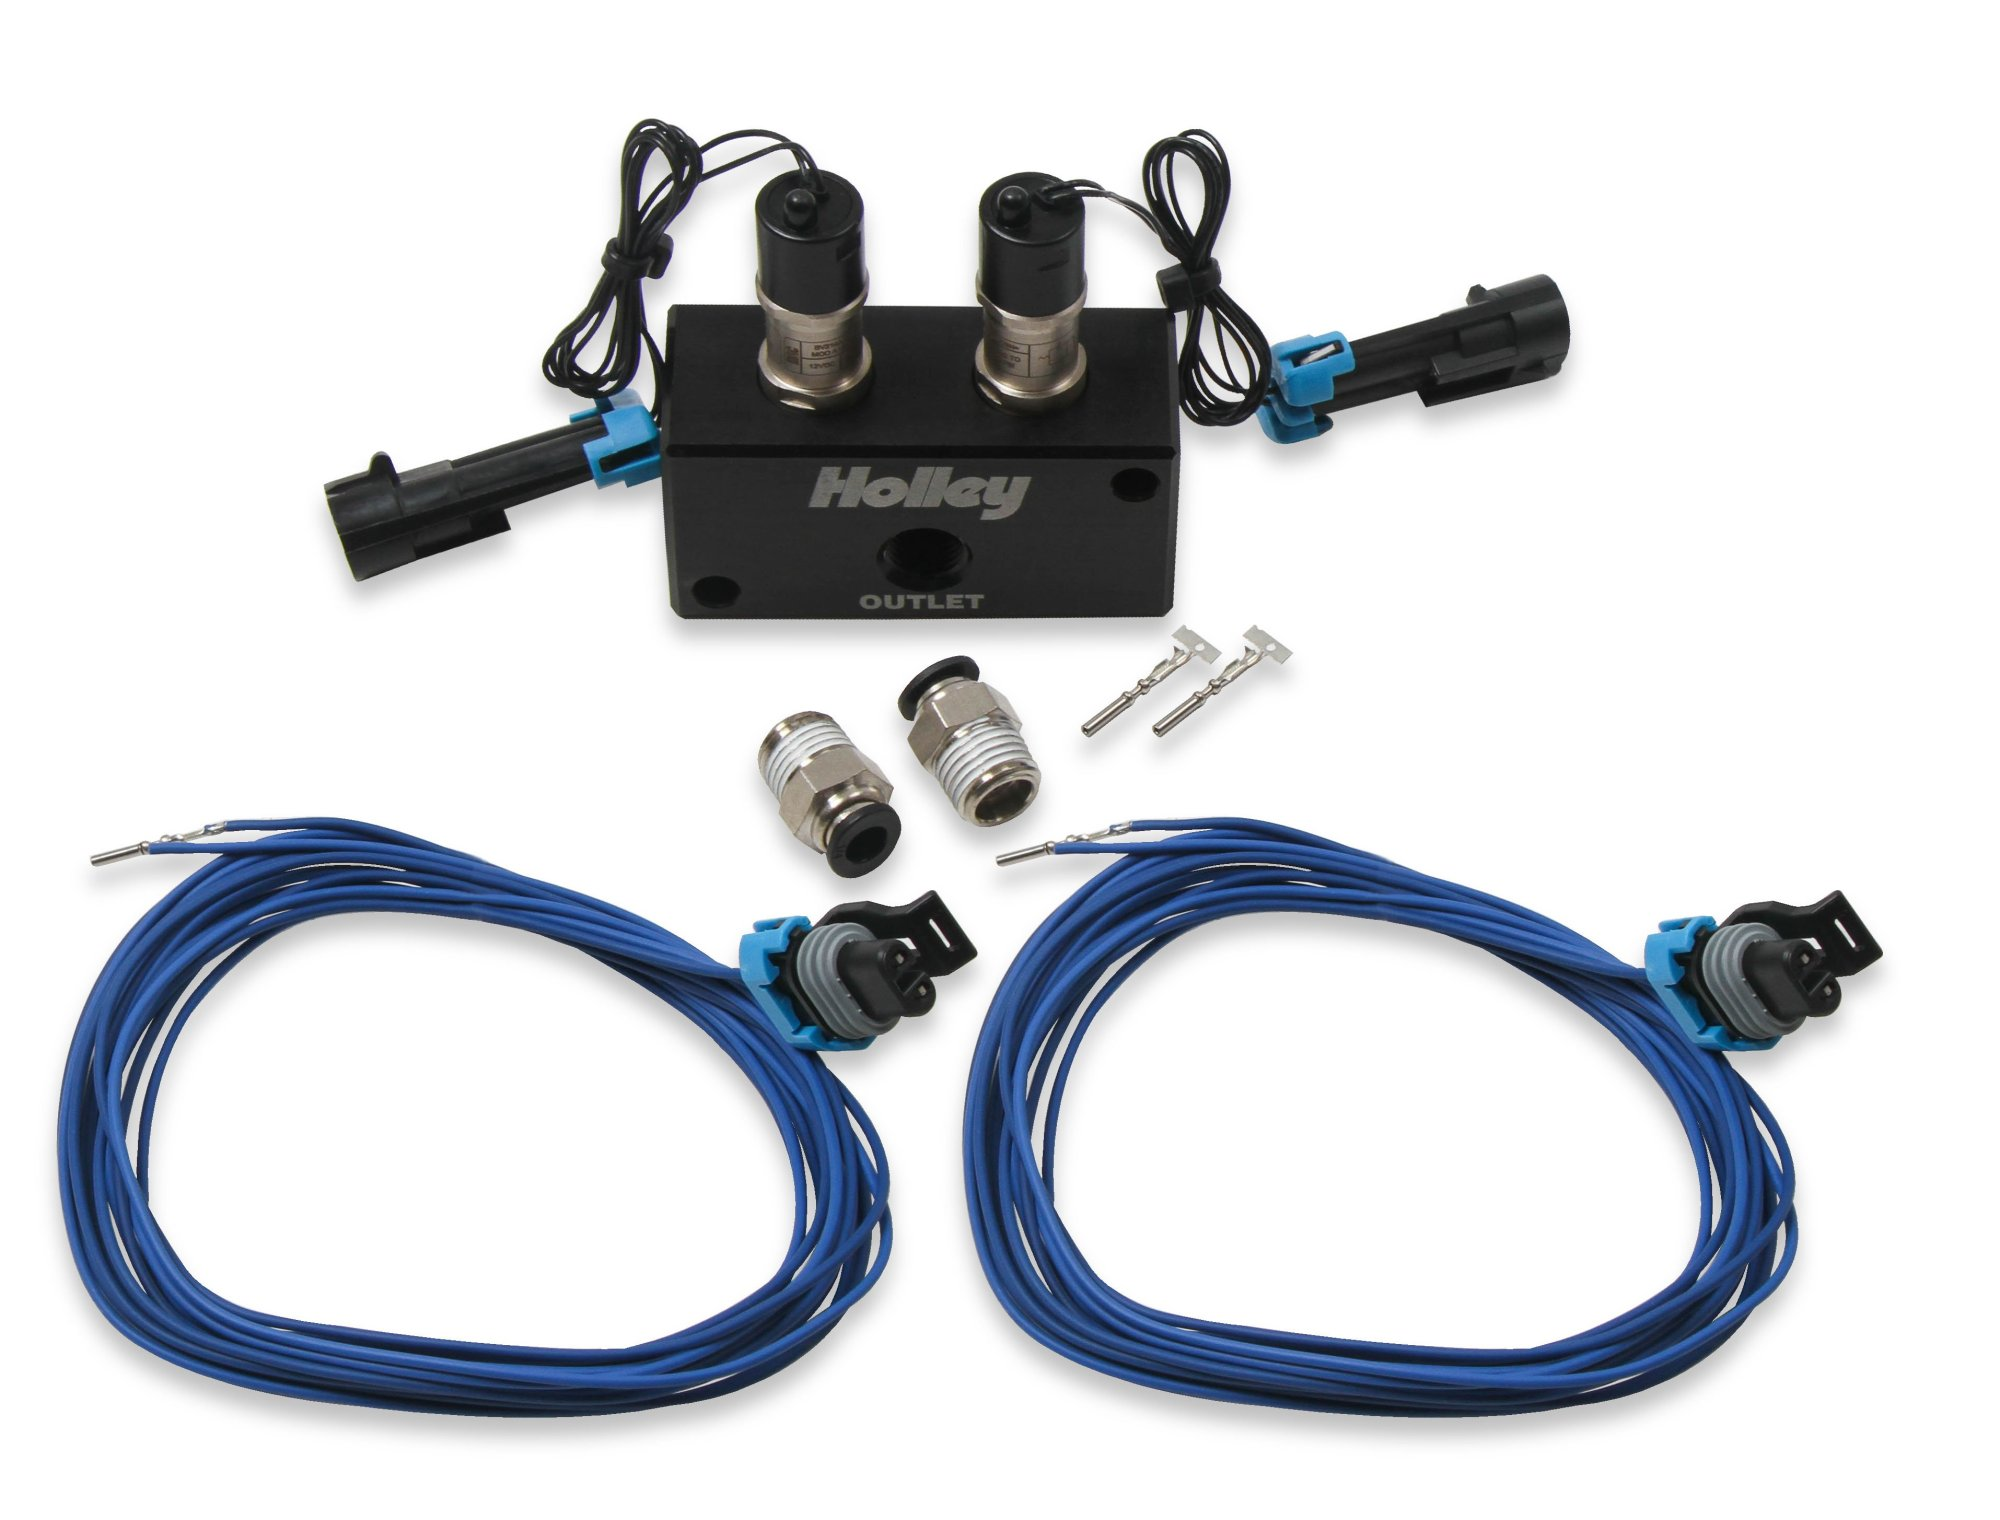 hight resolution of 557 201 holley efi high flow dual solenoid boost control kit image